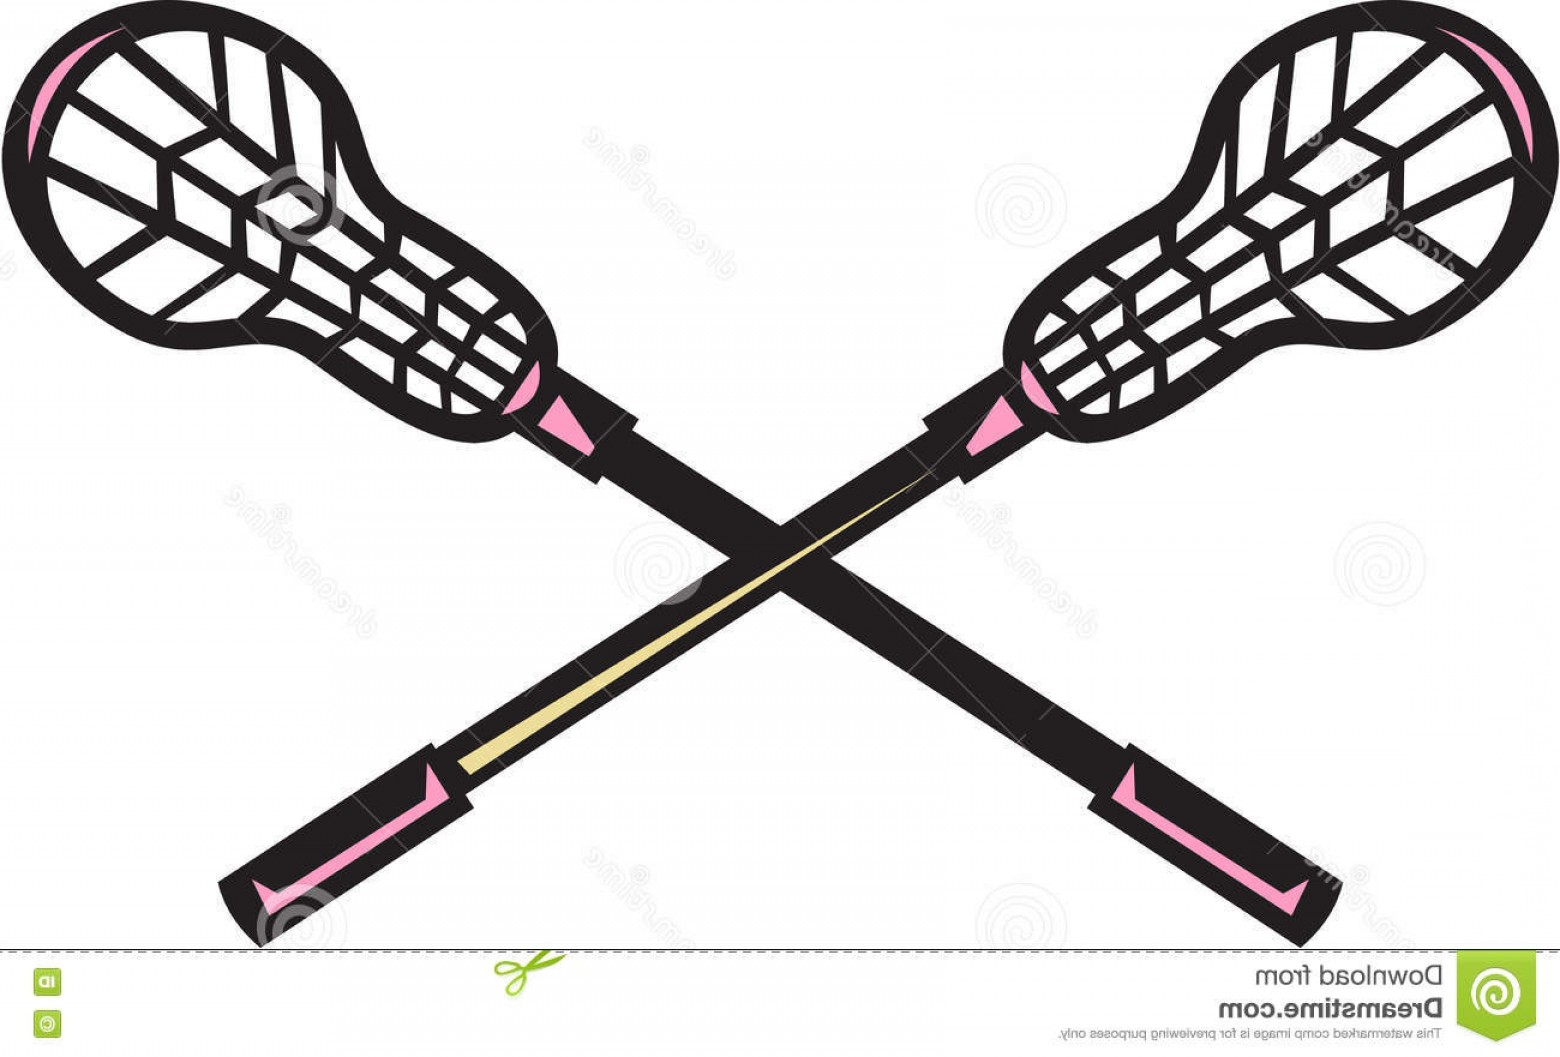 Lacrosse Stick Vector: Stock Illustration Lacrosse Stick Woodcut Illustration Crossed Set White Background Done Retro Style Image